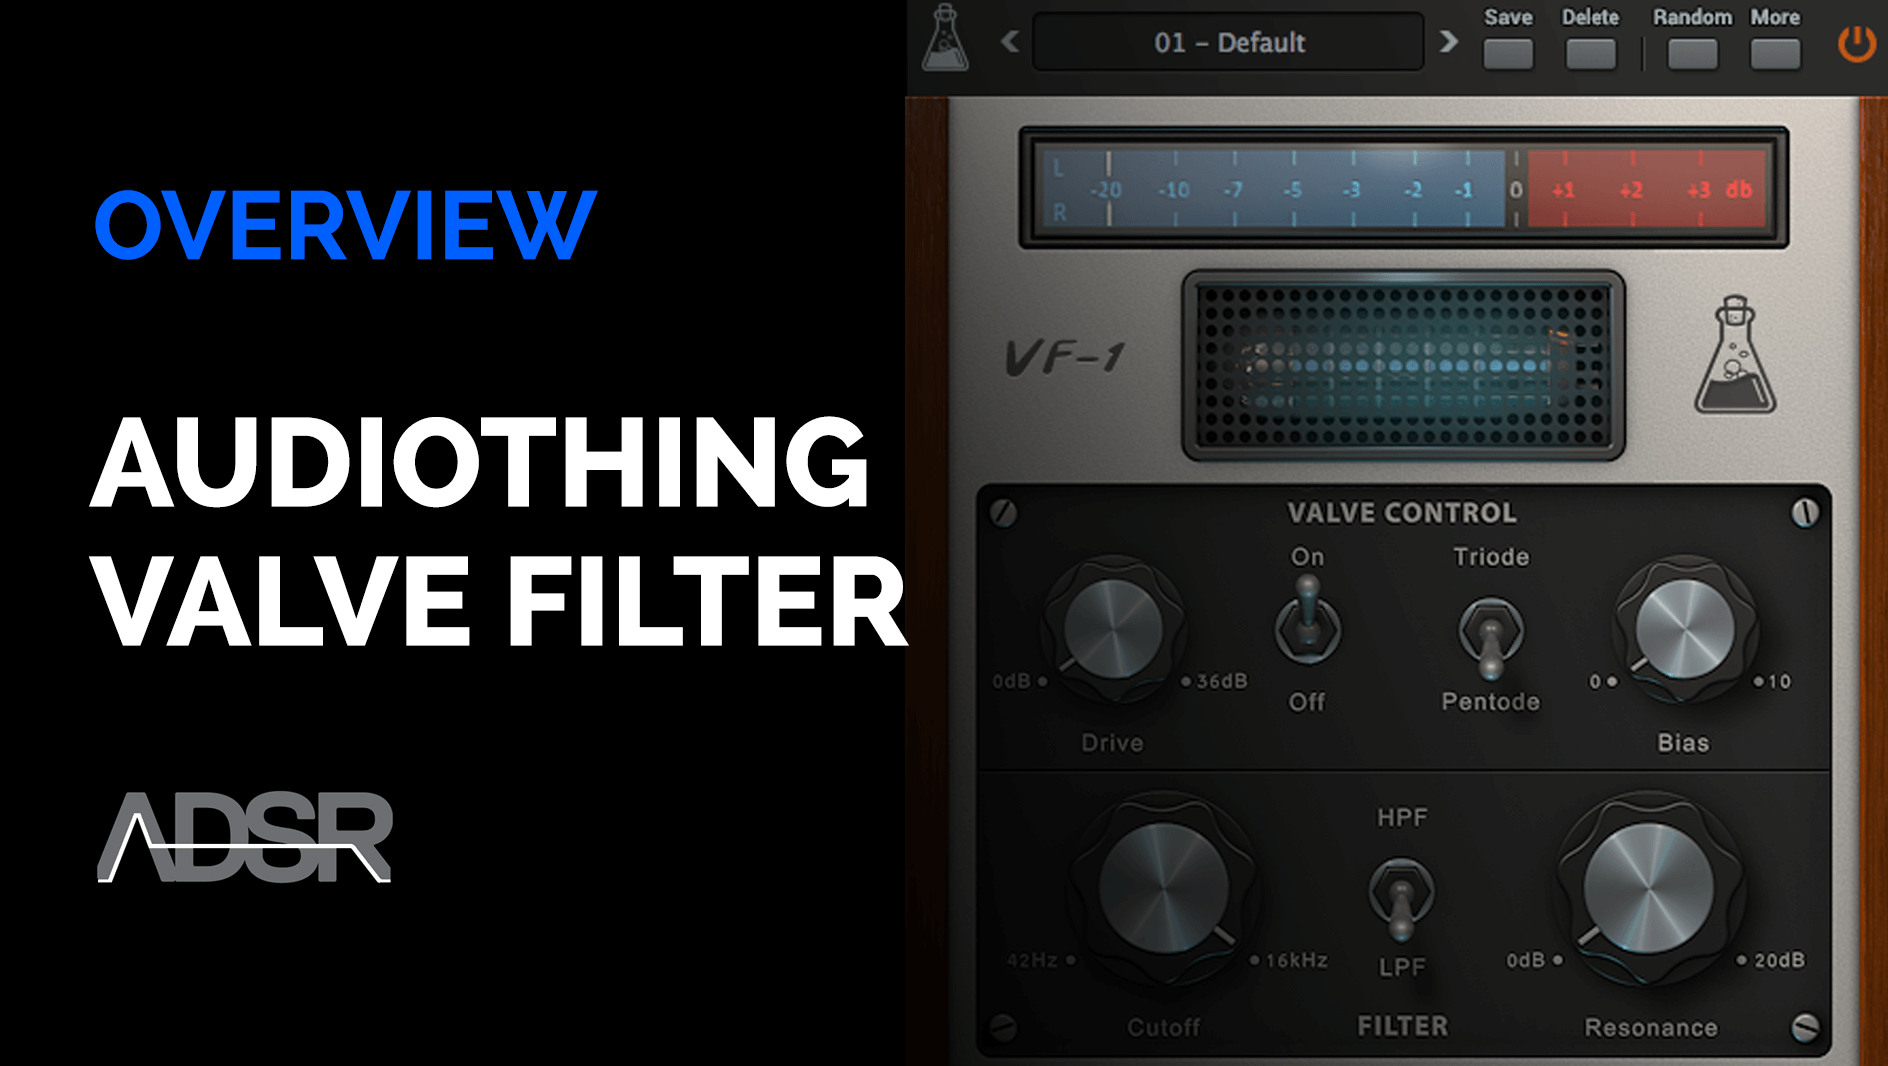 Video related to Valve Filter VF-1